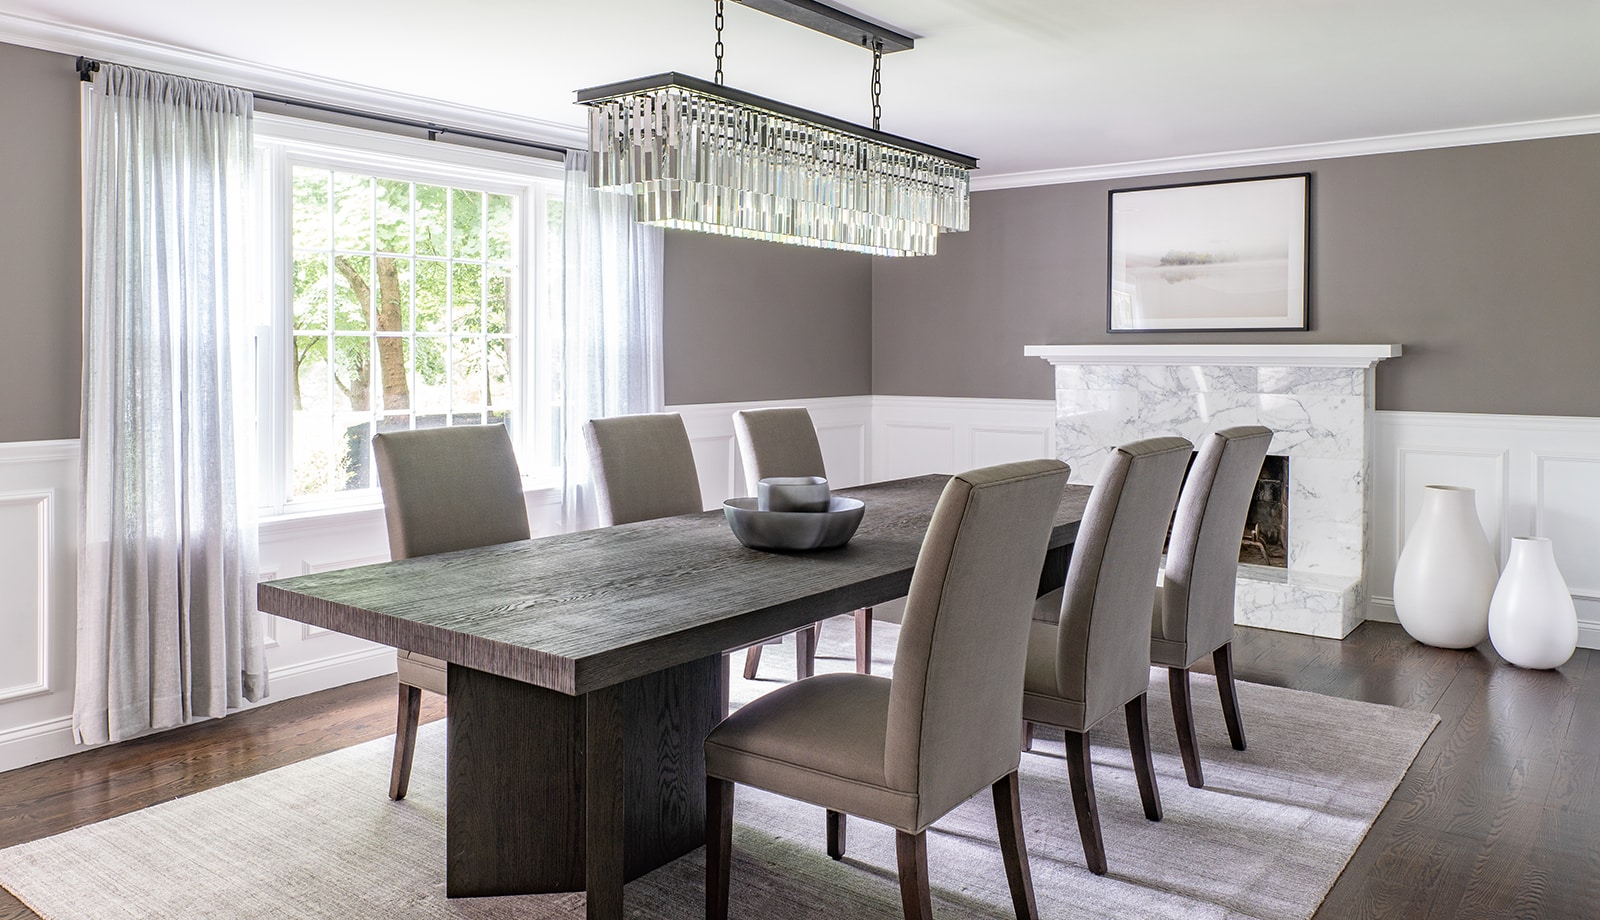 North Shore Tranquility Interiors Middleton MA Dining Room featured